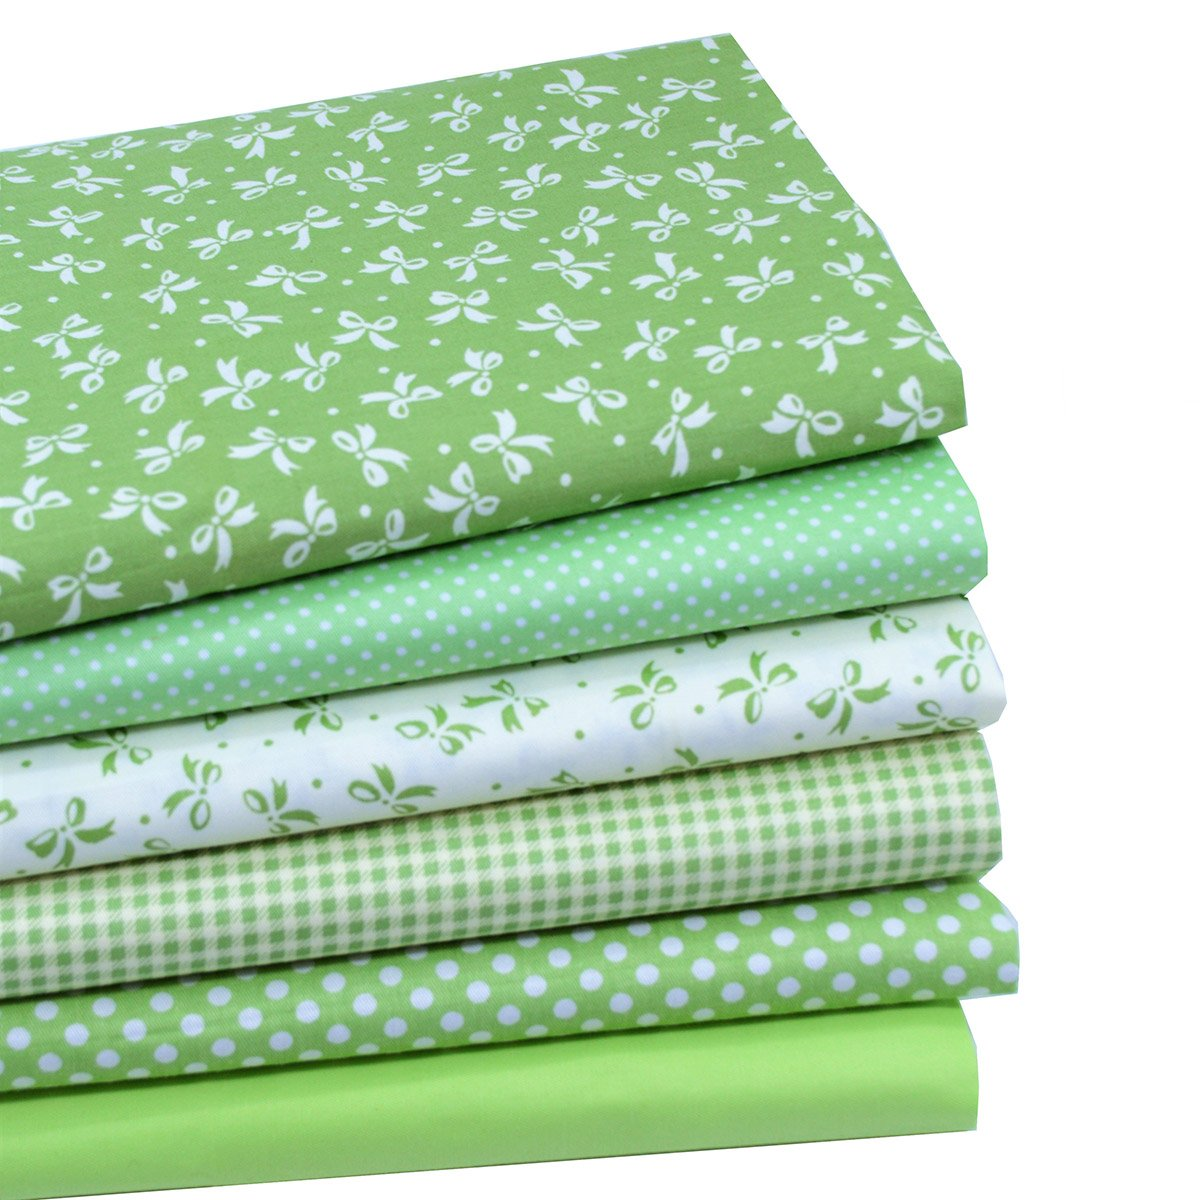 iNee Green Fat Quarters Fabric Bundles, Quilting Fabric for Sewing Crafting, 18 x 22 inches, (Green)